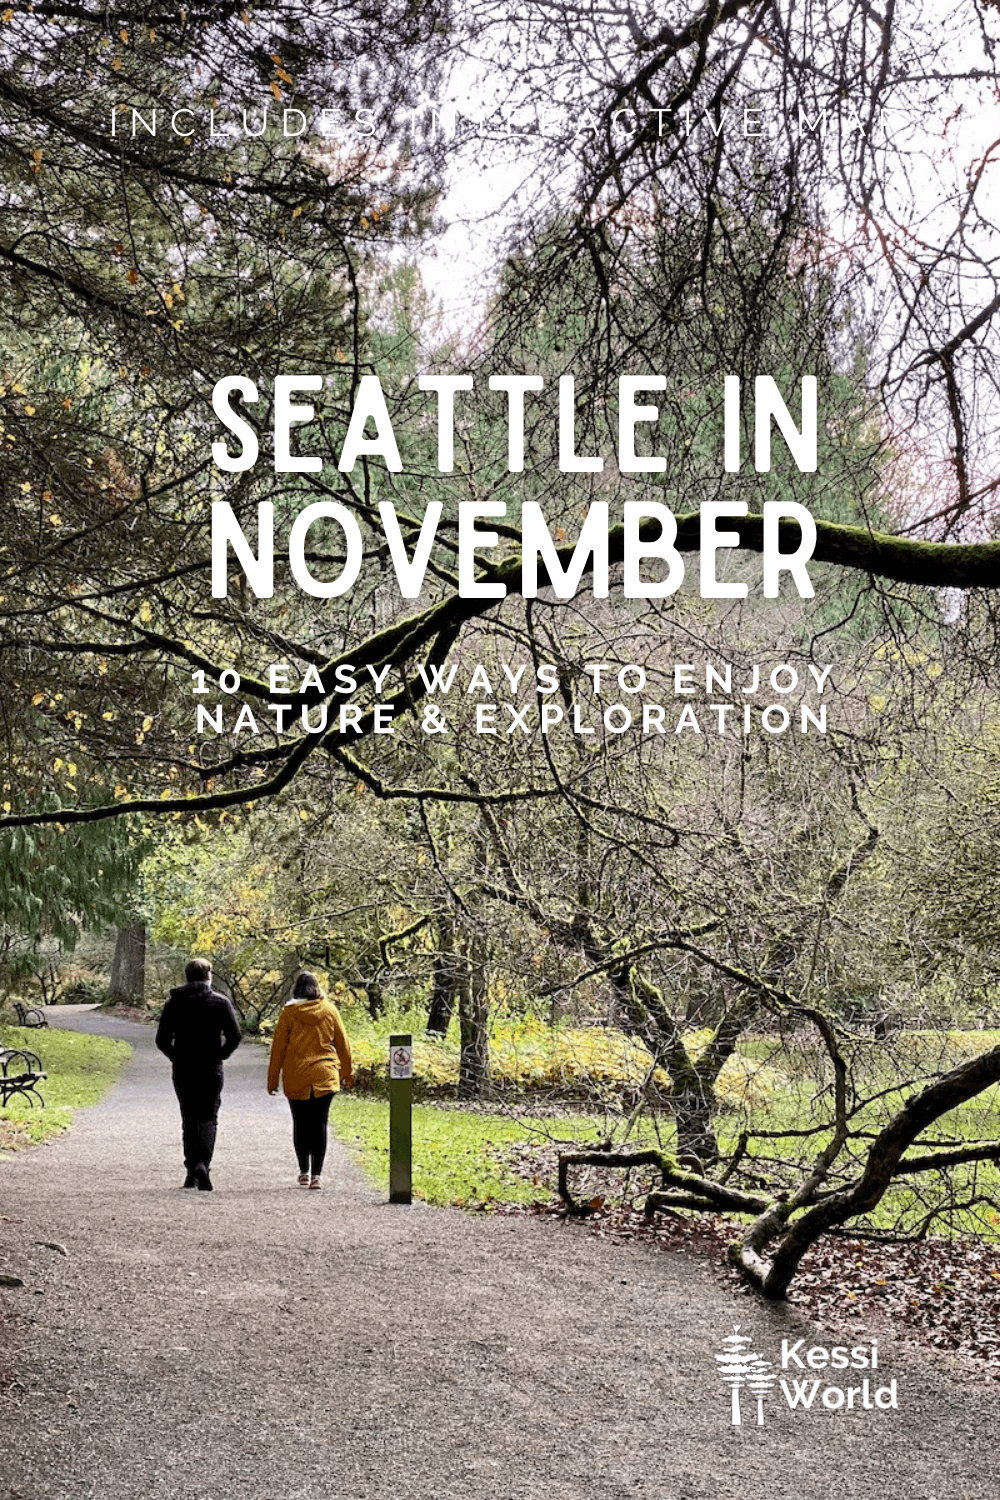 This Pinterest pin shows Two people walk on a gravel path in a winter scene in Seattle's Washington Park Arboretum. The trees above them have lost their leaves and it is a winter scene with not much color except the green grass in the lawn area.